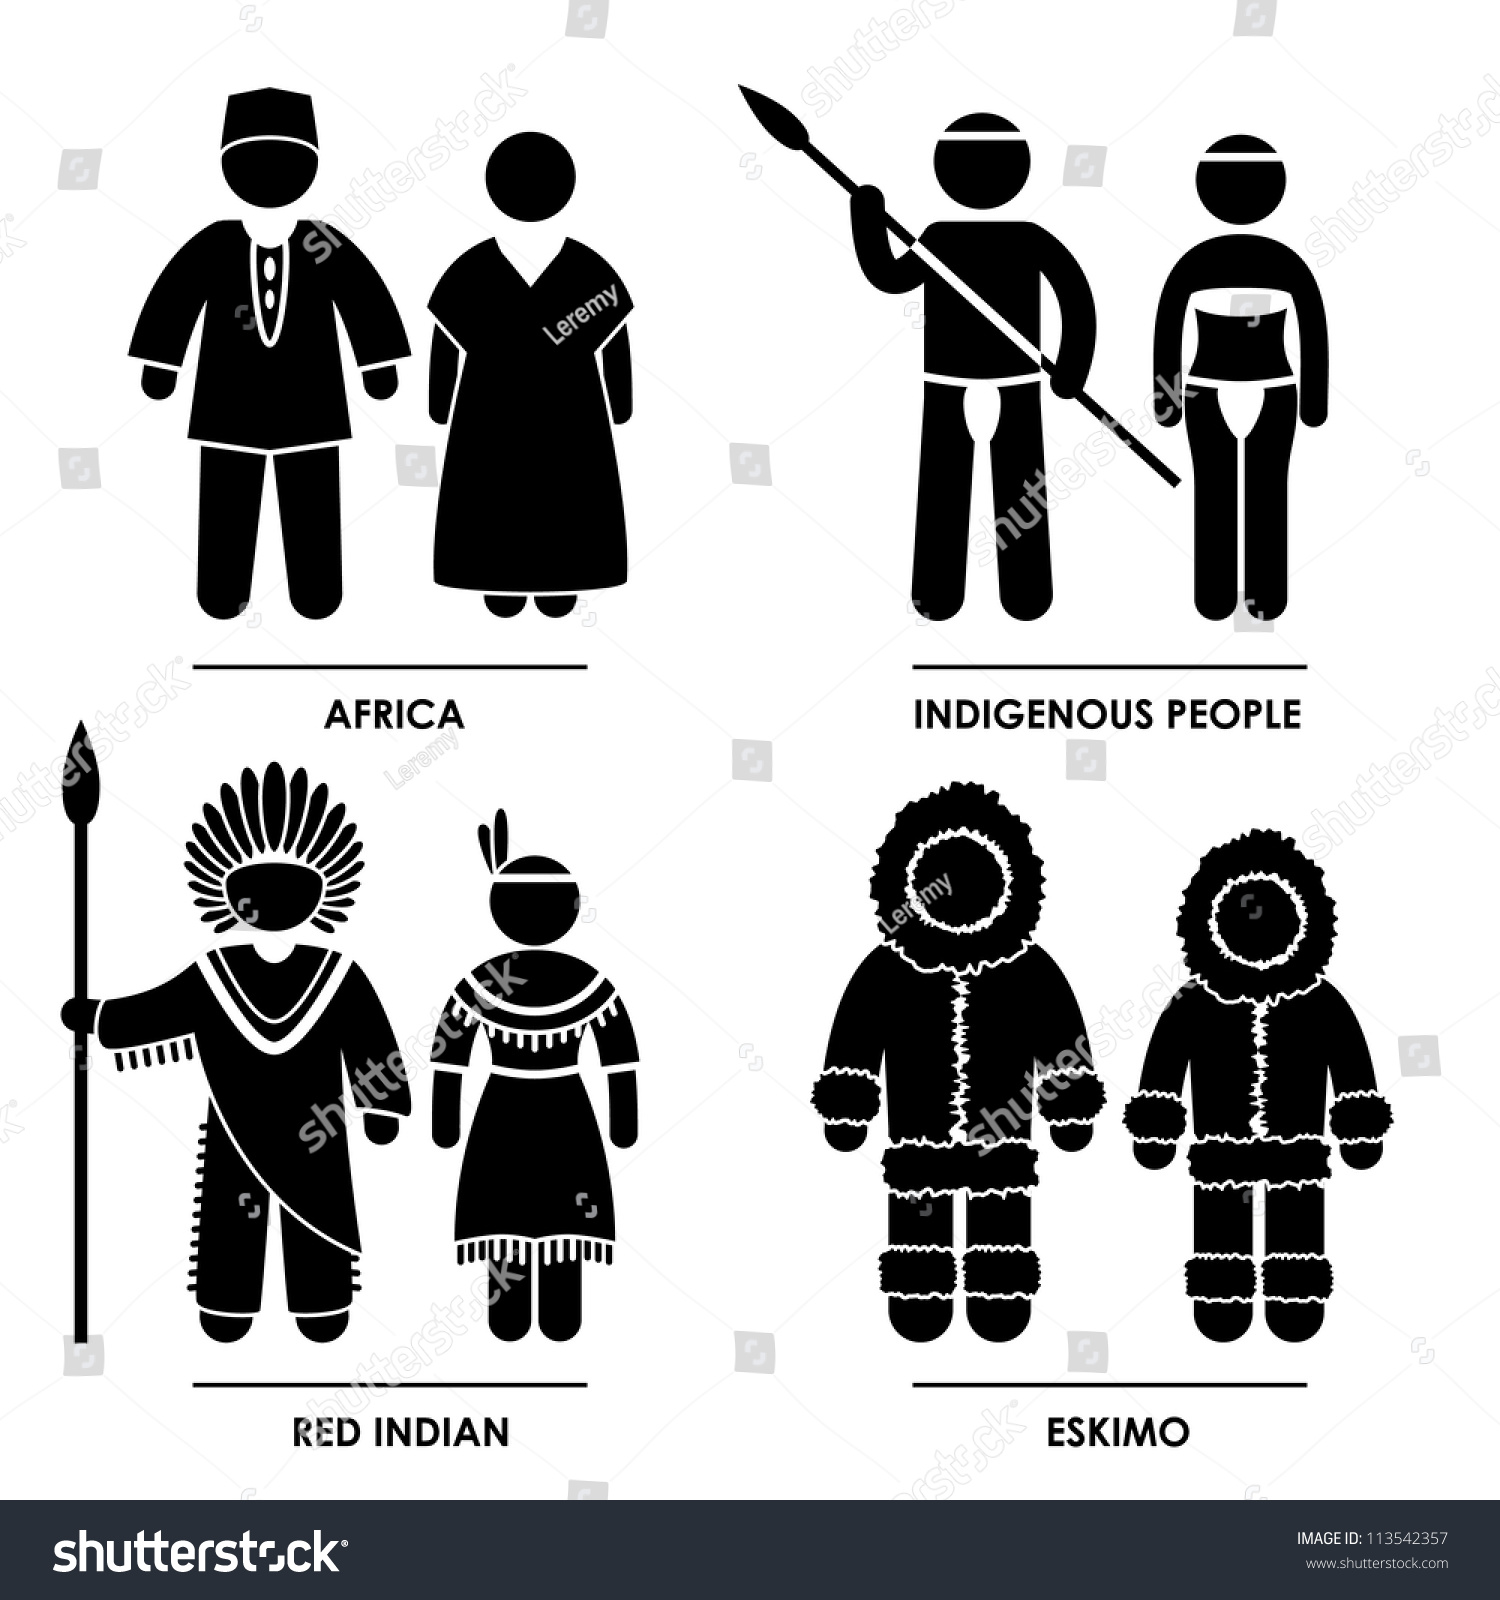 Africa indigenous people red indian eskimo stock vector 113542357 africa indigenous people red indian eskimo man woman people national traditional costume dress clothing icon symbol biocorpaavc